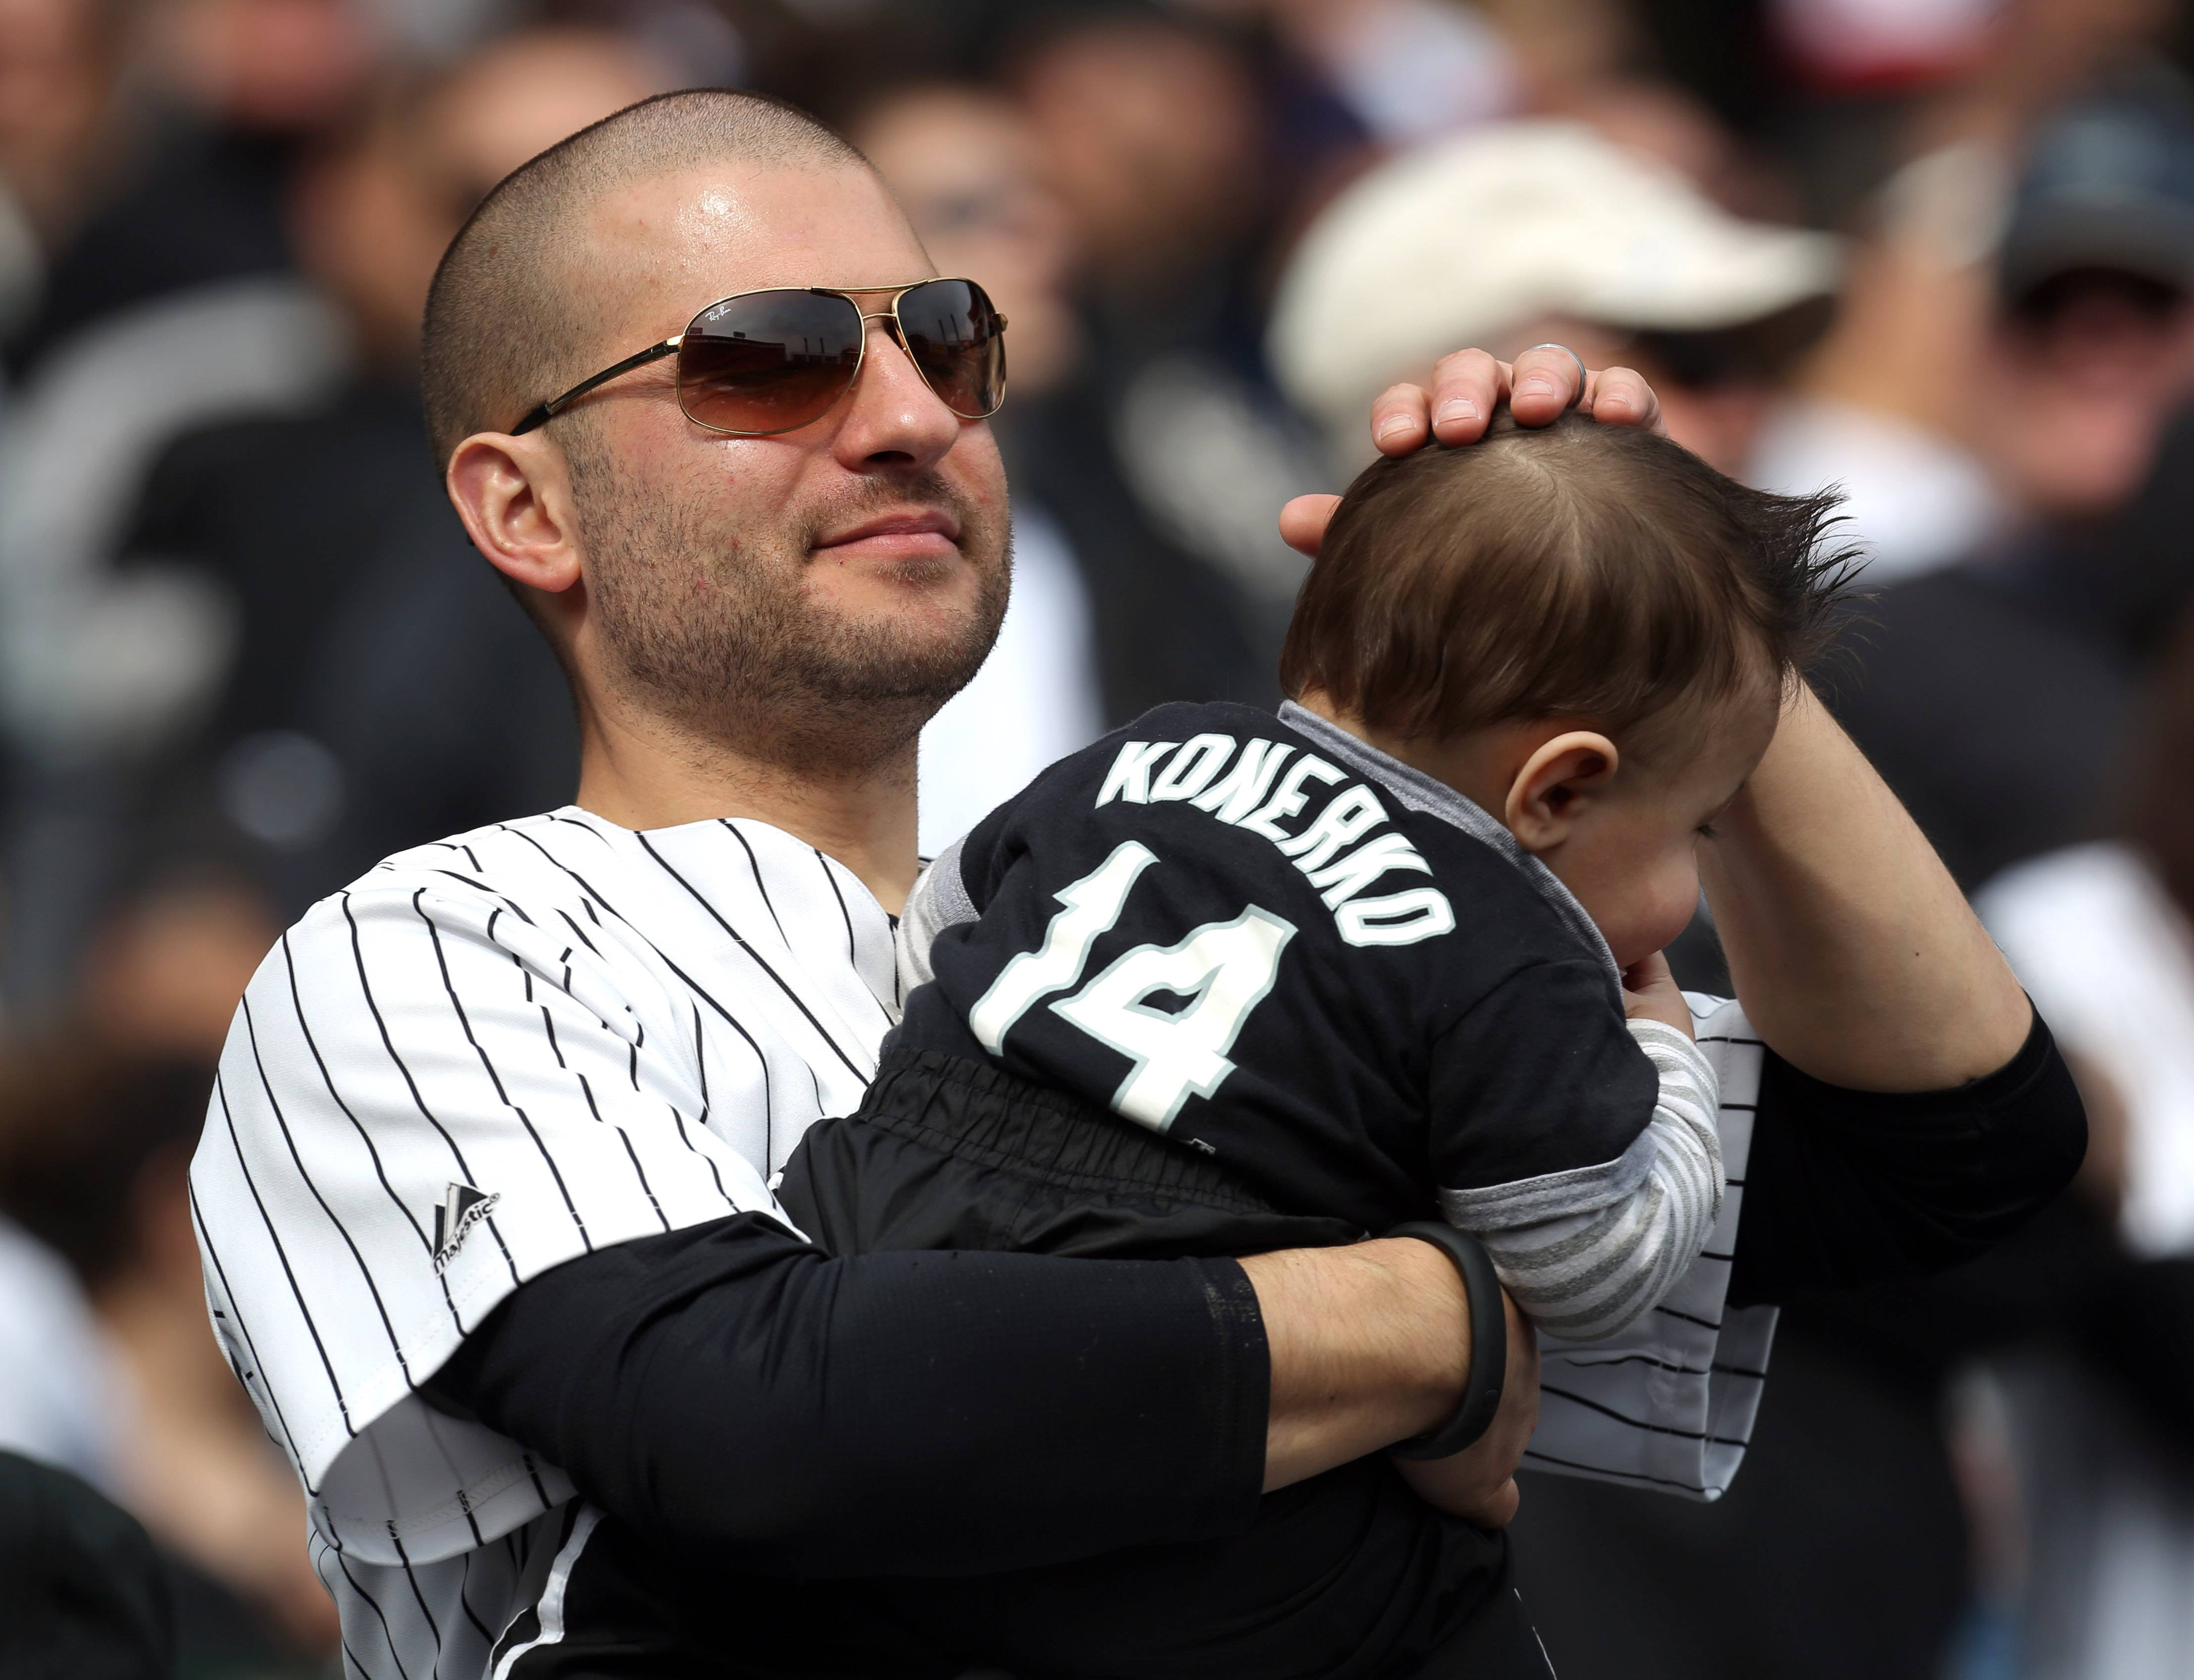 A fan holds his infant son, clad in a Paul Konerko Jersey, during Monday's White Sox home opener against the Minnesota Twins at U.S. Cellular Field.